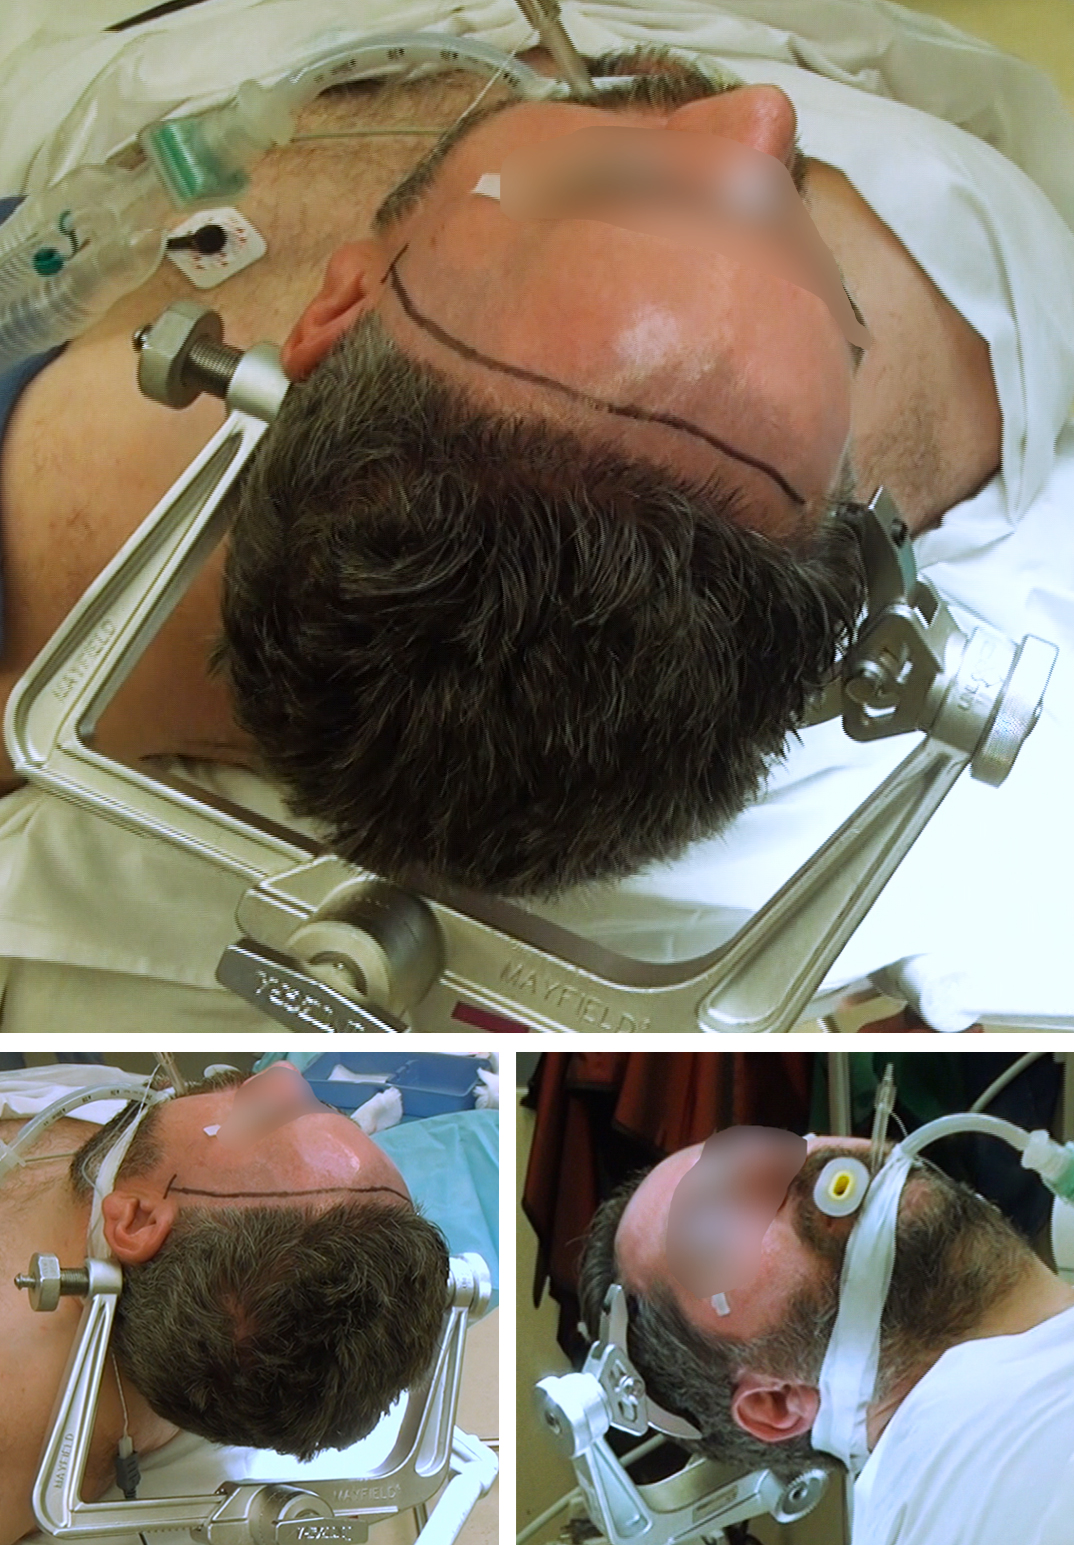 Figure 6: The position of the head for pterional and orbitozygomatic craniotomies is shown. The single pin is placed behind the ear (left lower image) over the mastoid bone. The double-pin arm is situated over the contralateral superior temporal line (right lower image). This setup implants the pins furthest away from the incision. The malar eminence is the highest point on the head, so that the frontal lobe is mobilized away from the anterior fossa floor using gravity. The pins should not be placed within the temporalis muscle to avoid fixation failure.  The closer the lesion to the midline (anterior communicating artery aneurysm and tuberculum sella meningioma), the less the head is turned (30 degree turn). The more the lesion is away from the midline (middle cerebral artery aneurysm and lateral sphenoid wing meningioma), the more the head is turned (45 degree turn). This algorithm minimizes the risk of the temporal lobe obscuring the operative trajectory.  Excessive head extension will complicate the operative trajectory toward an anterior cranial base lesion.